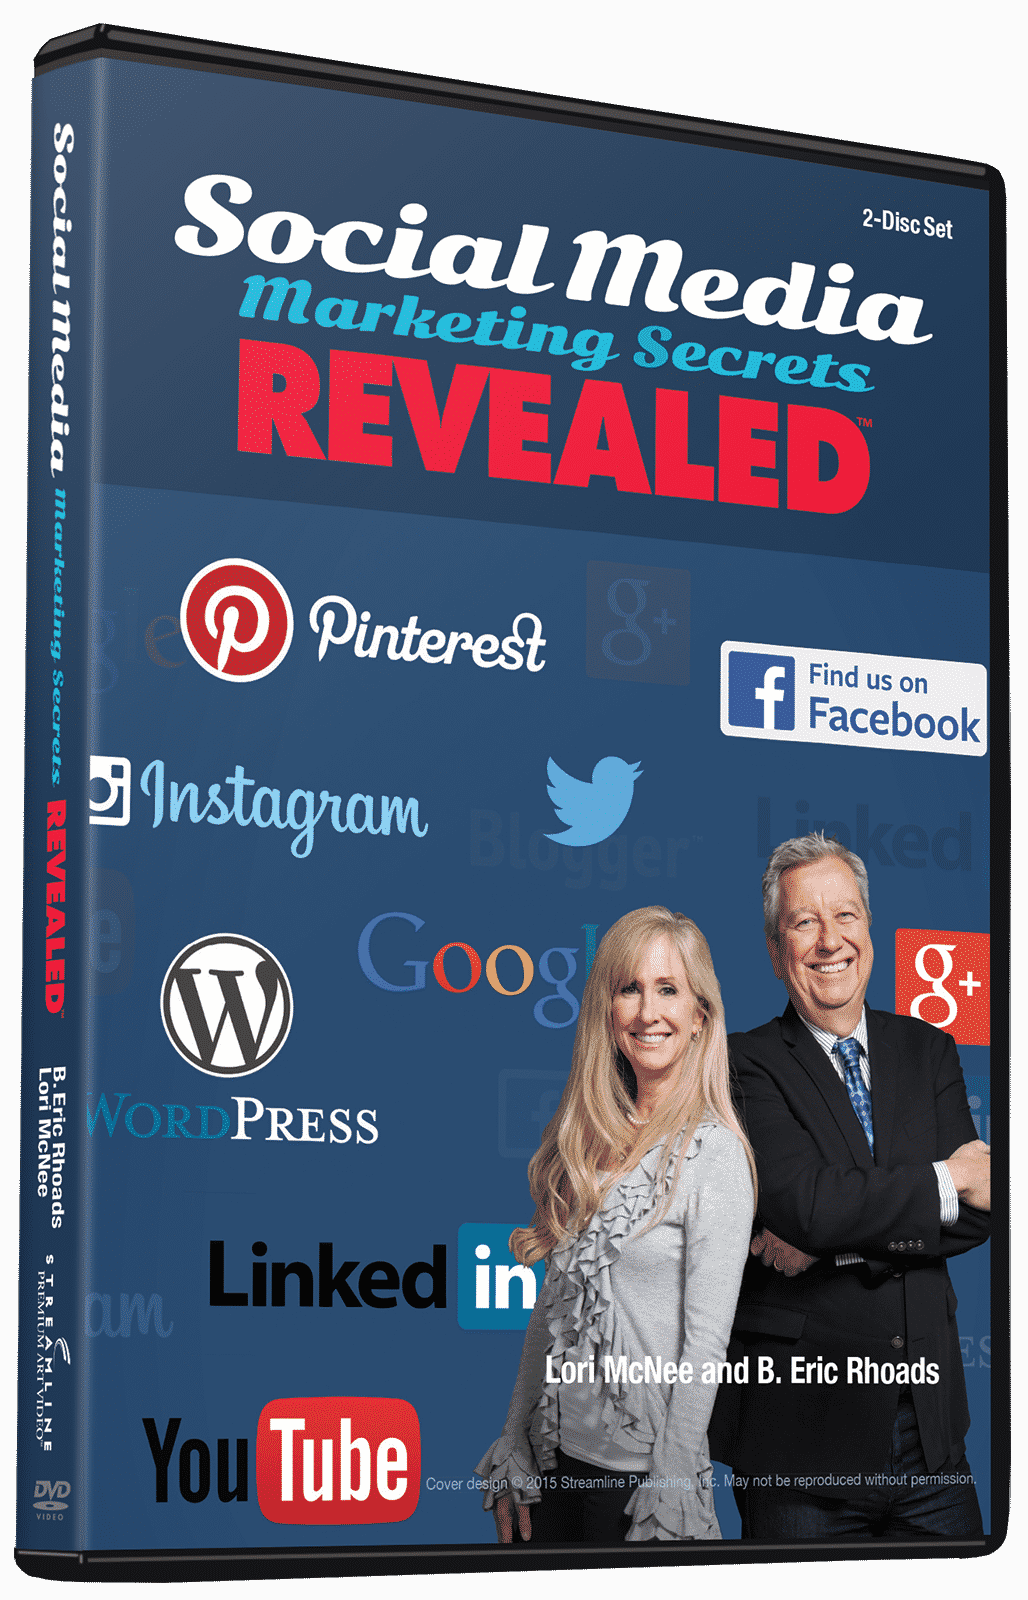 Social Media Marketing Secrets Revealed with Lori McNee and B. Eric Rhoads